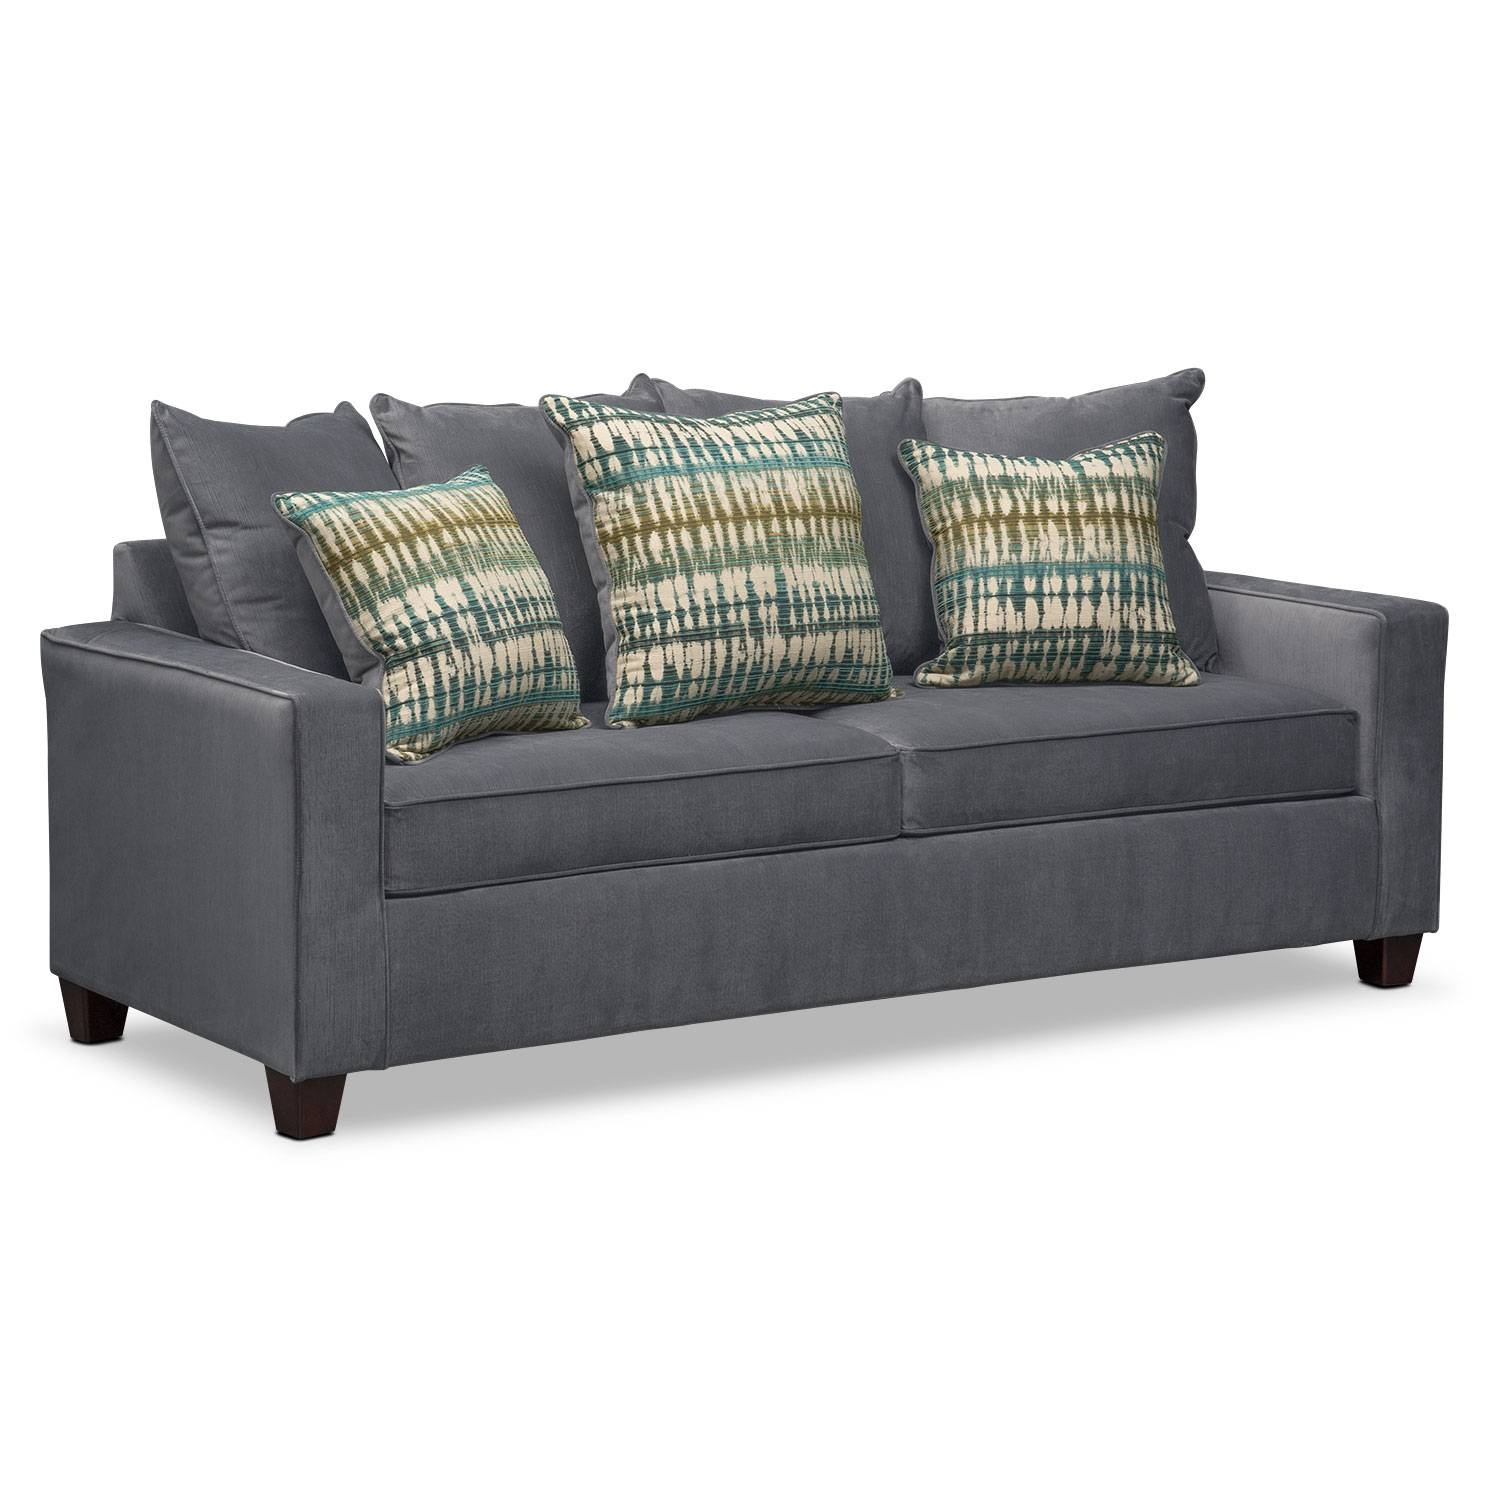 Bryden Queen Memory Foam Sleeper Sofa - Slate | Value City Furniture within Queen Convertible Sofas (Image 2 of 15)